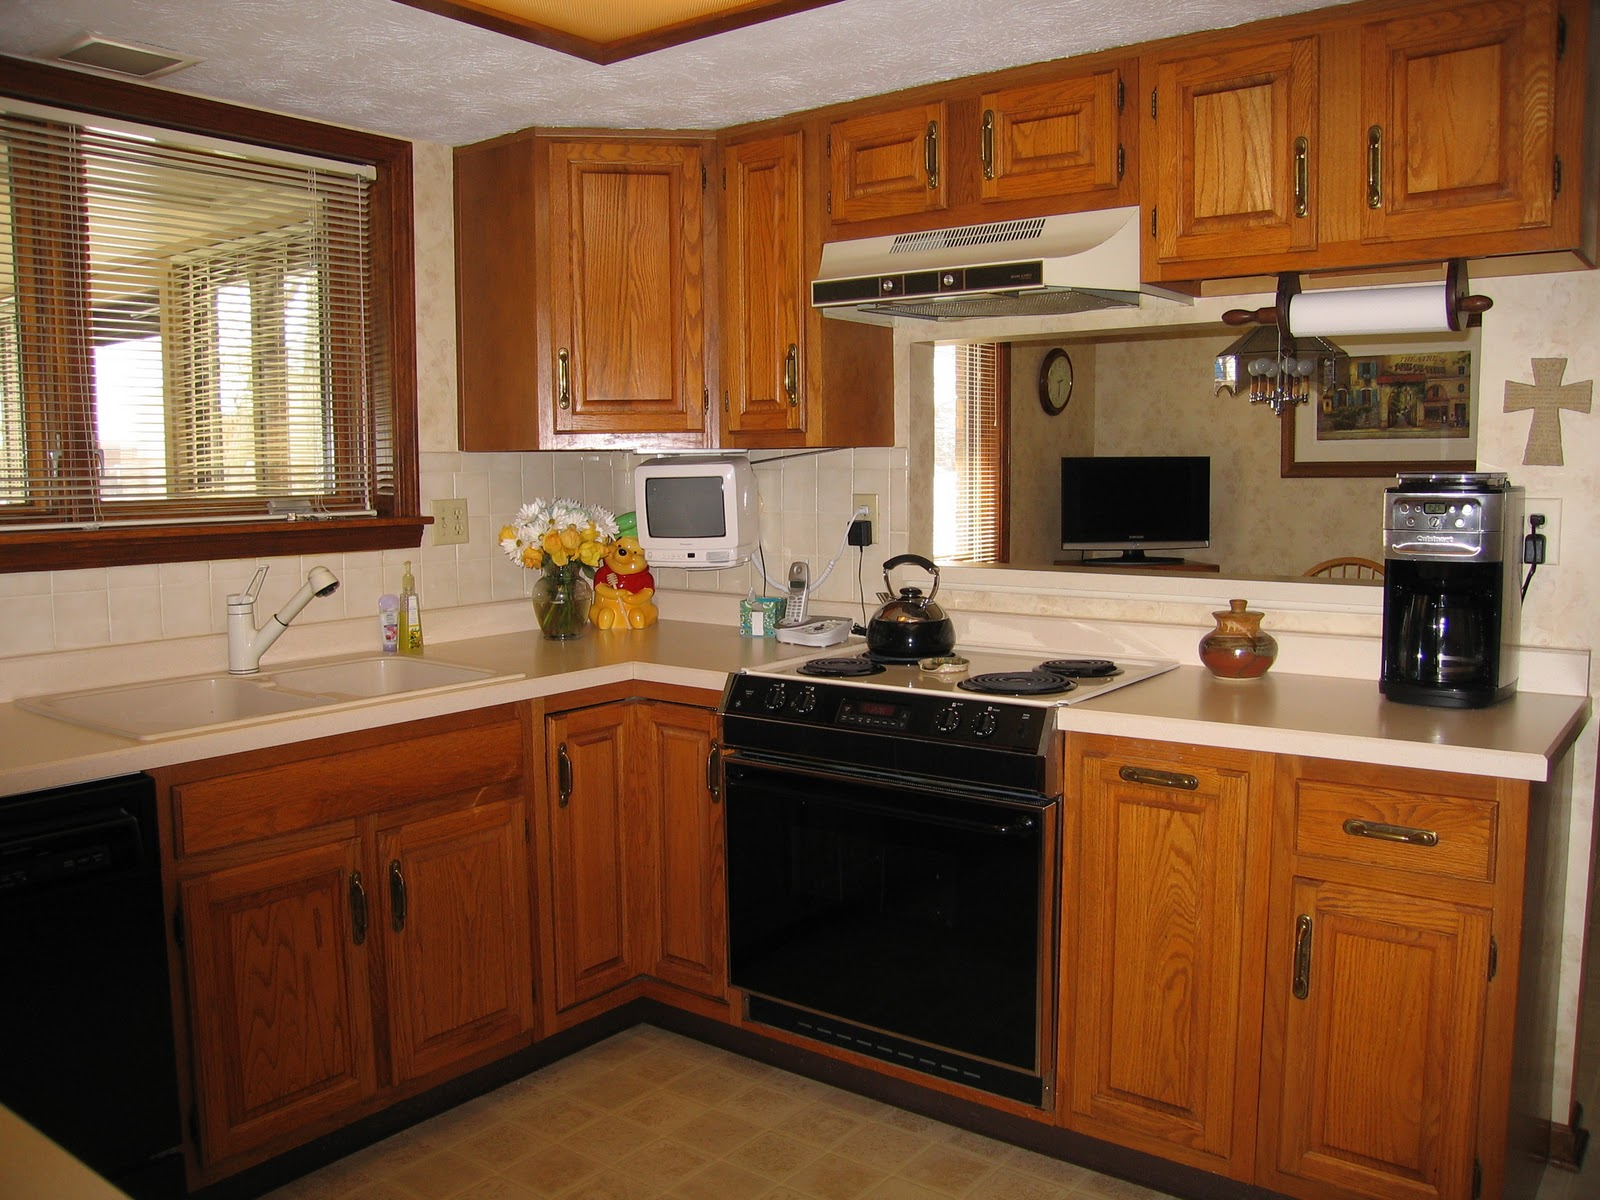 Meet The Parents And Their Amazing Kitchen Remodel Evolution Of - Kitchen drop ceiling remodel